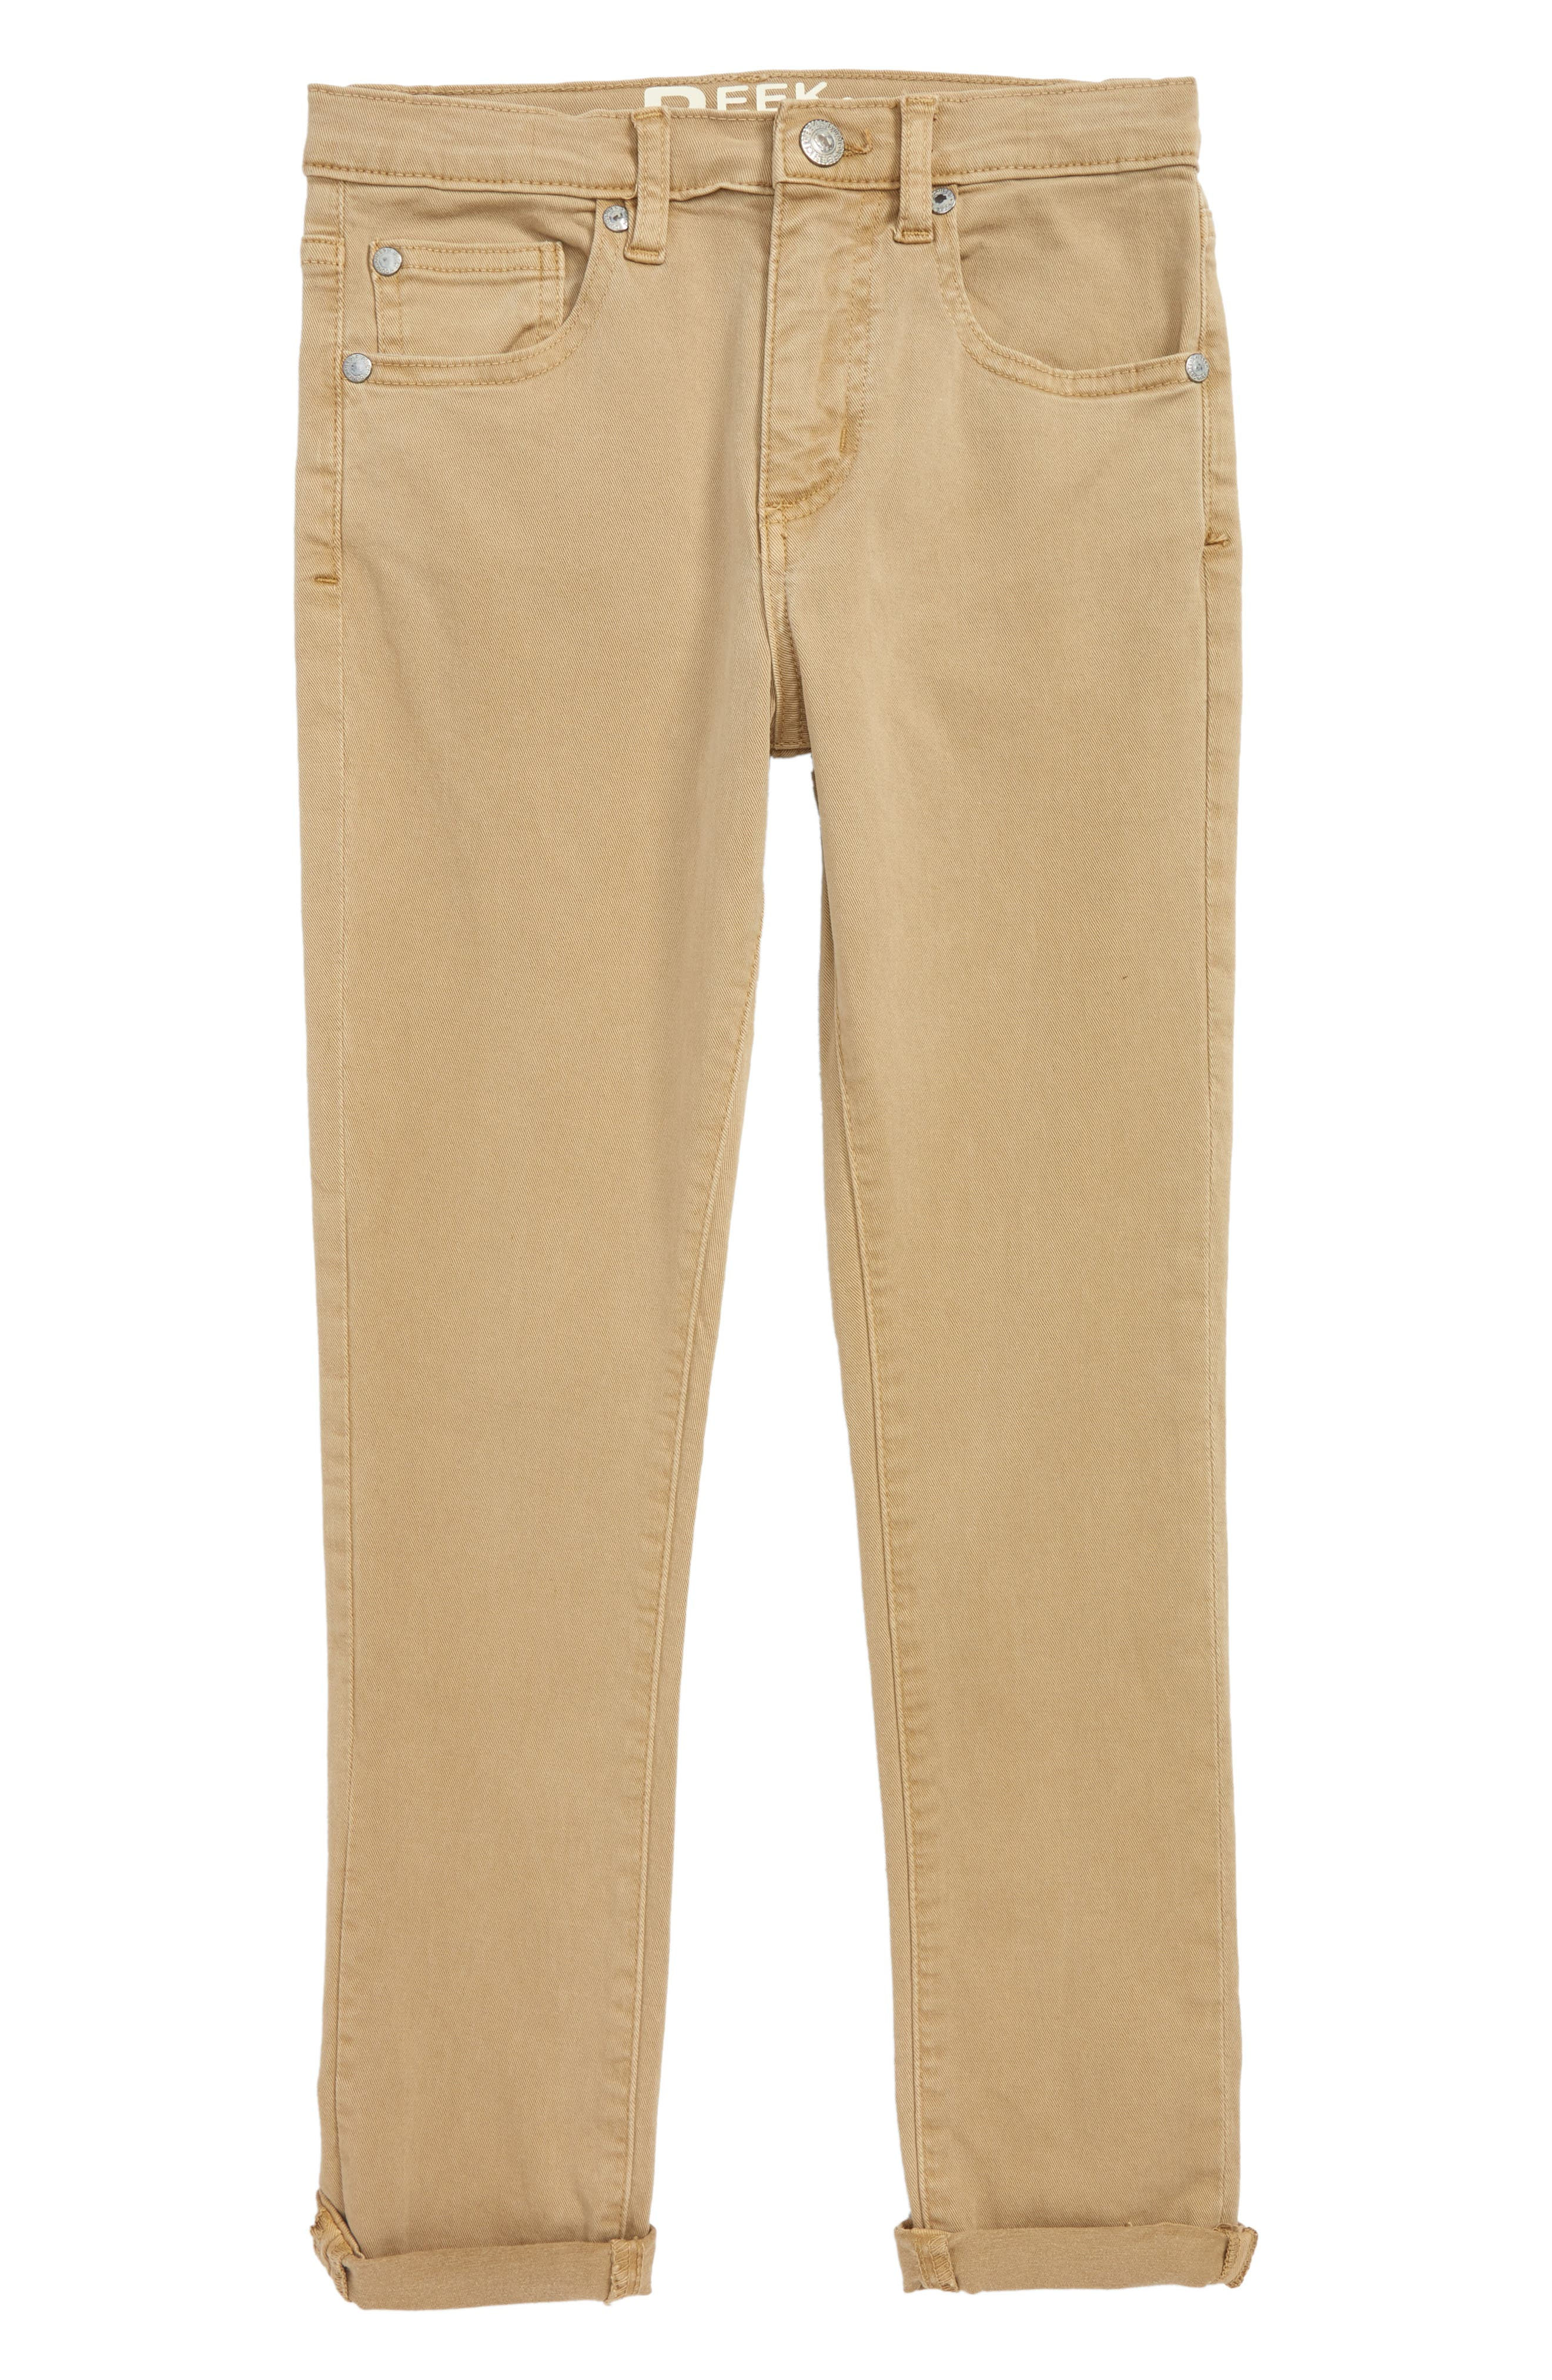 Slouch Twill Jeans,                             Main thumbnail 1, color,                             250